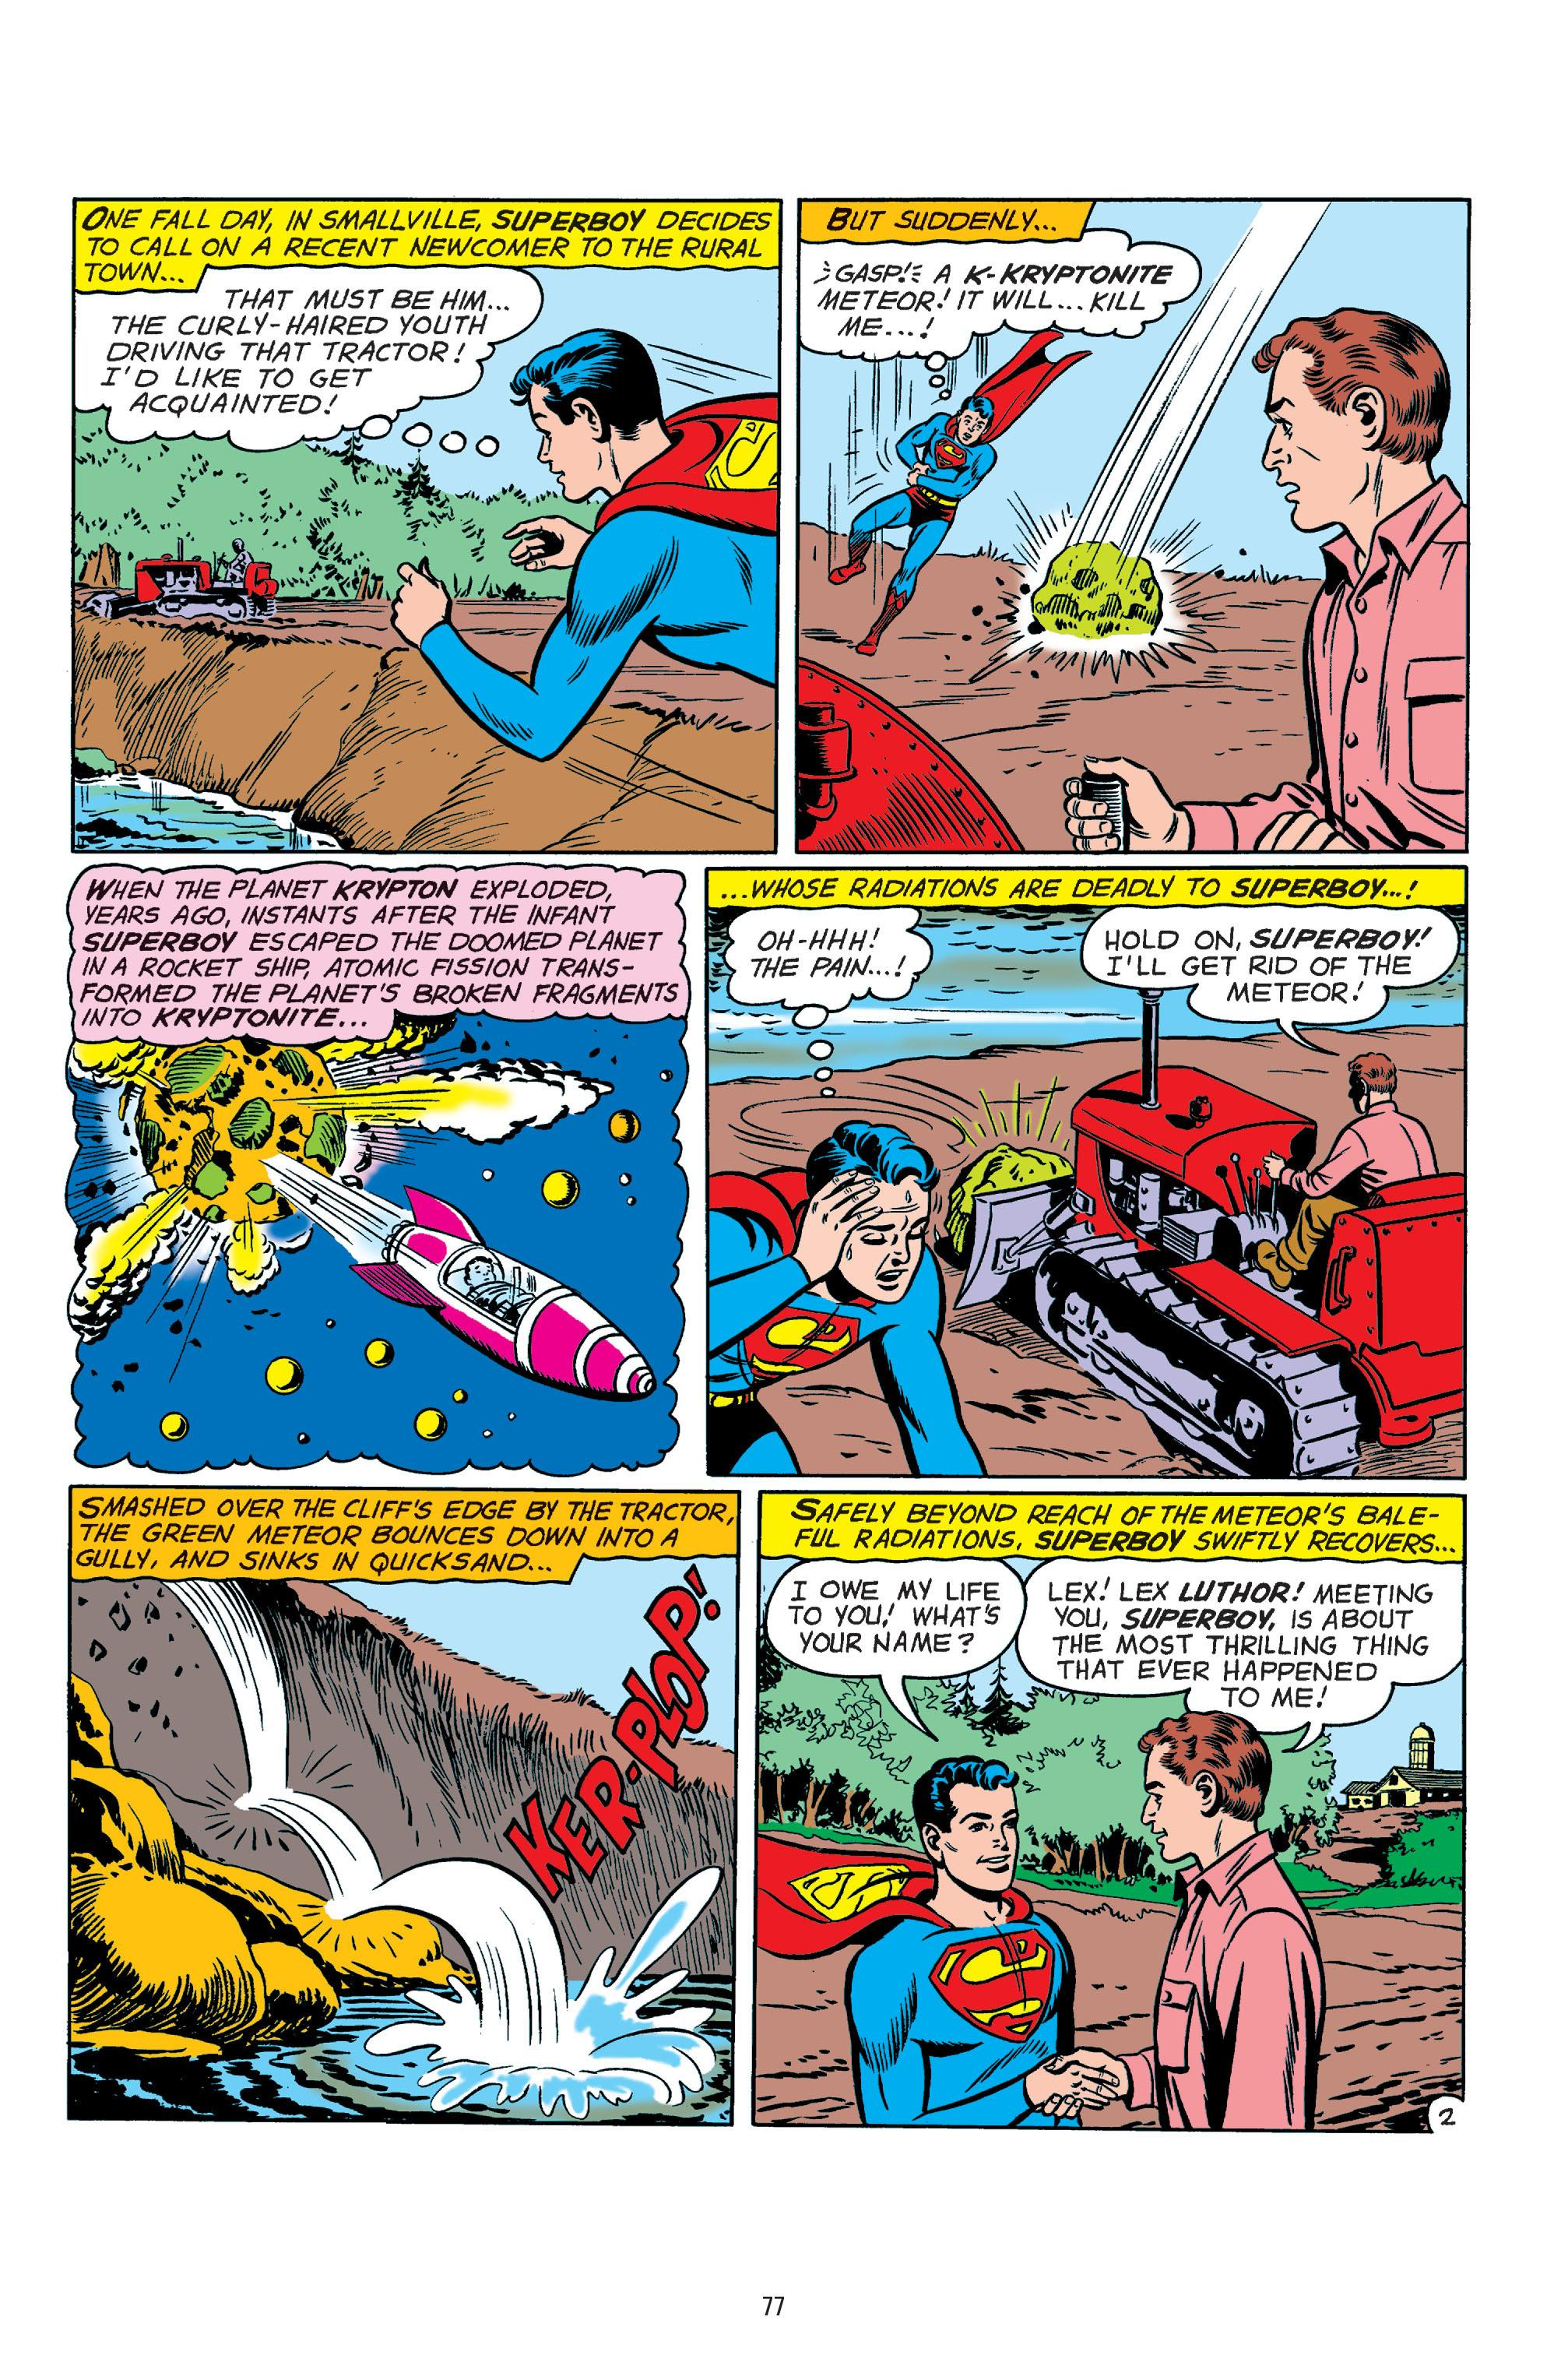 The Great Superman Comic Book Collection review